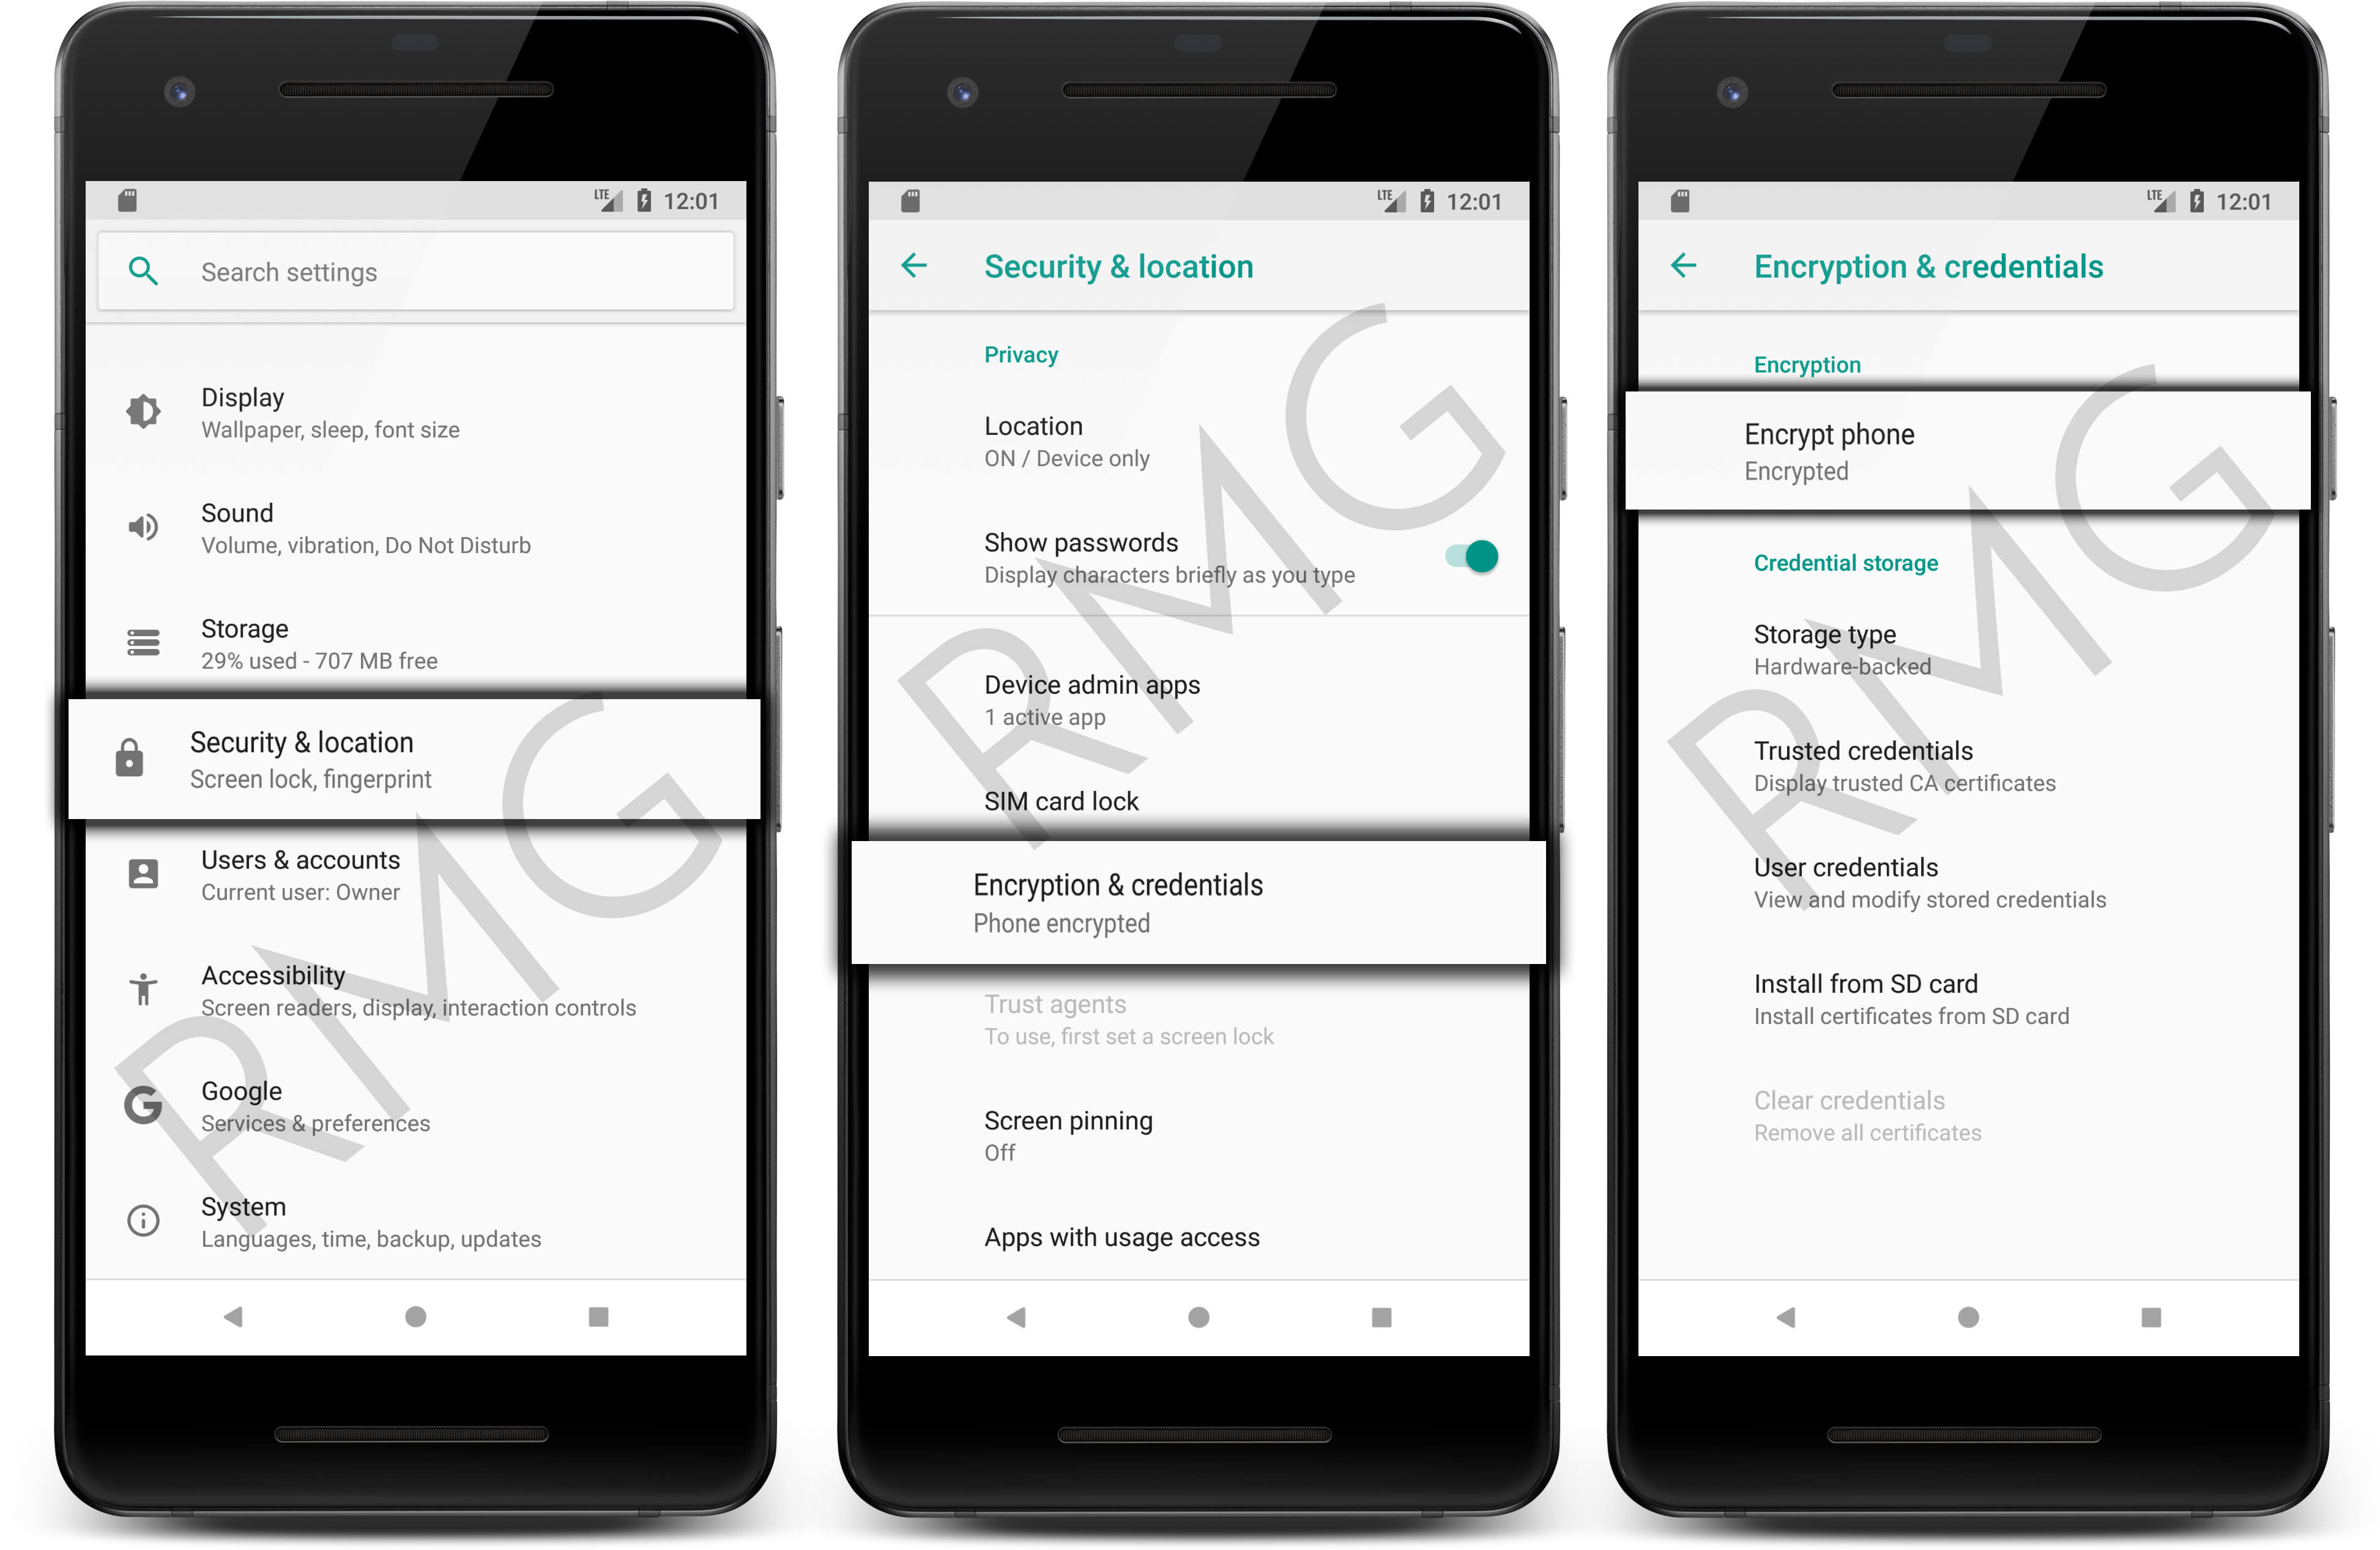 How to securely wipe data on your Android smartphone ...